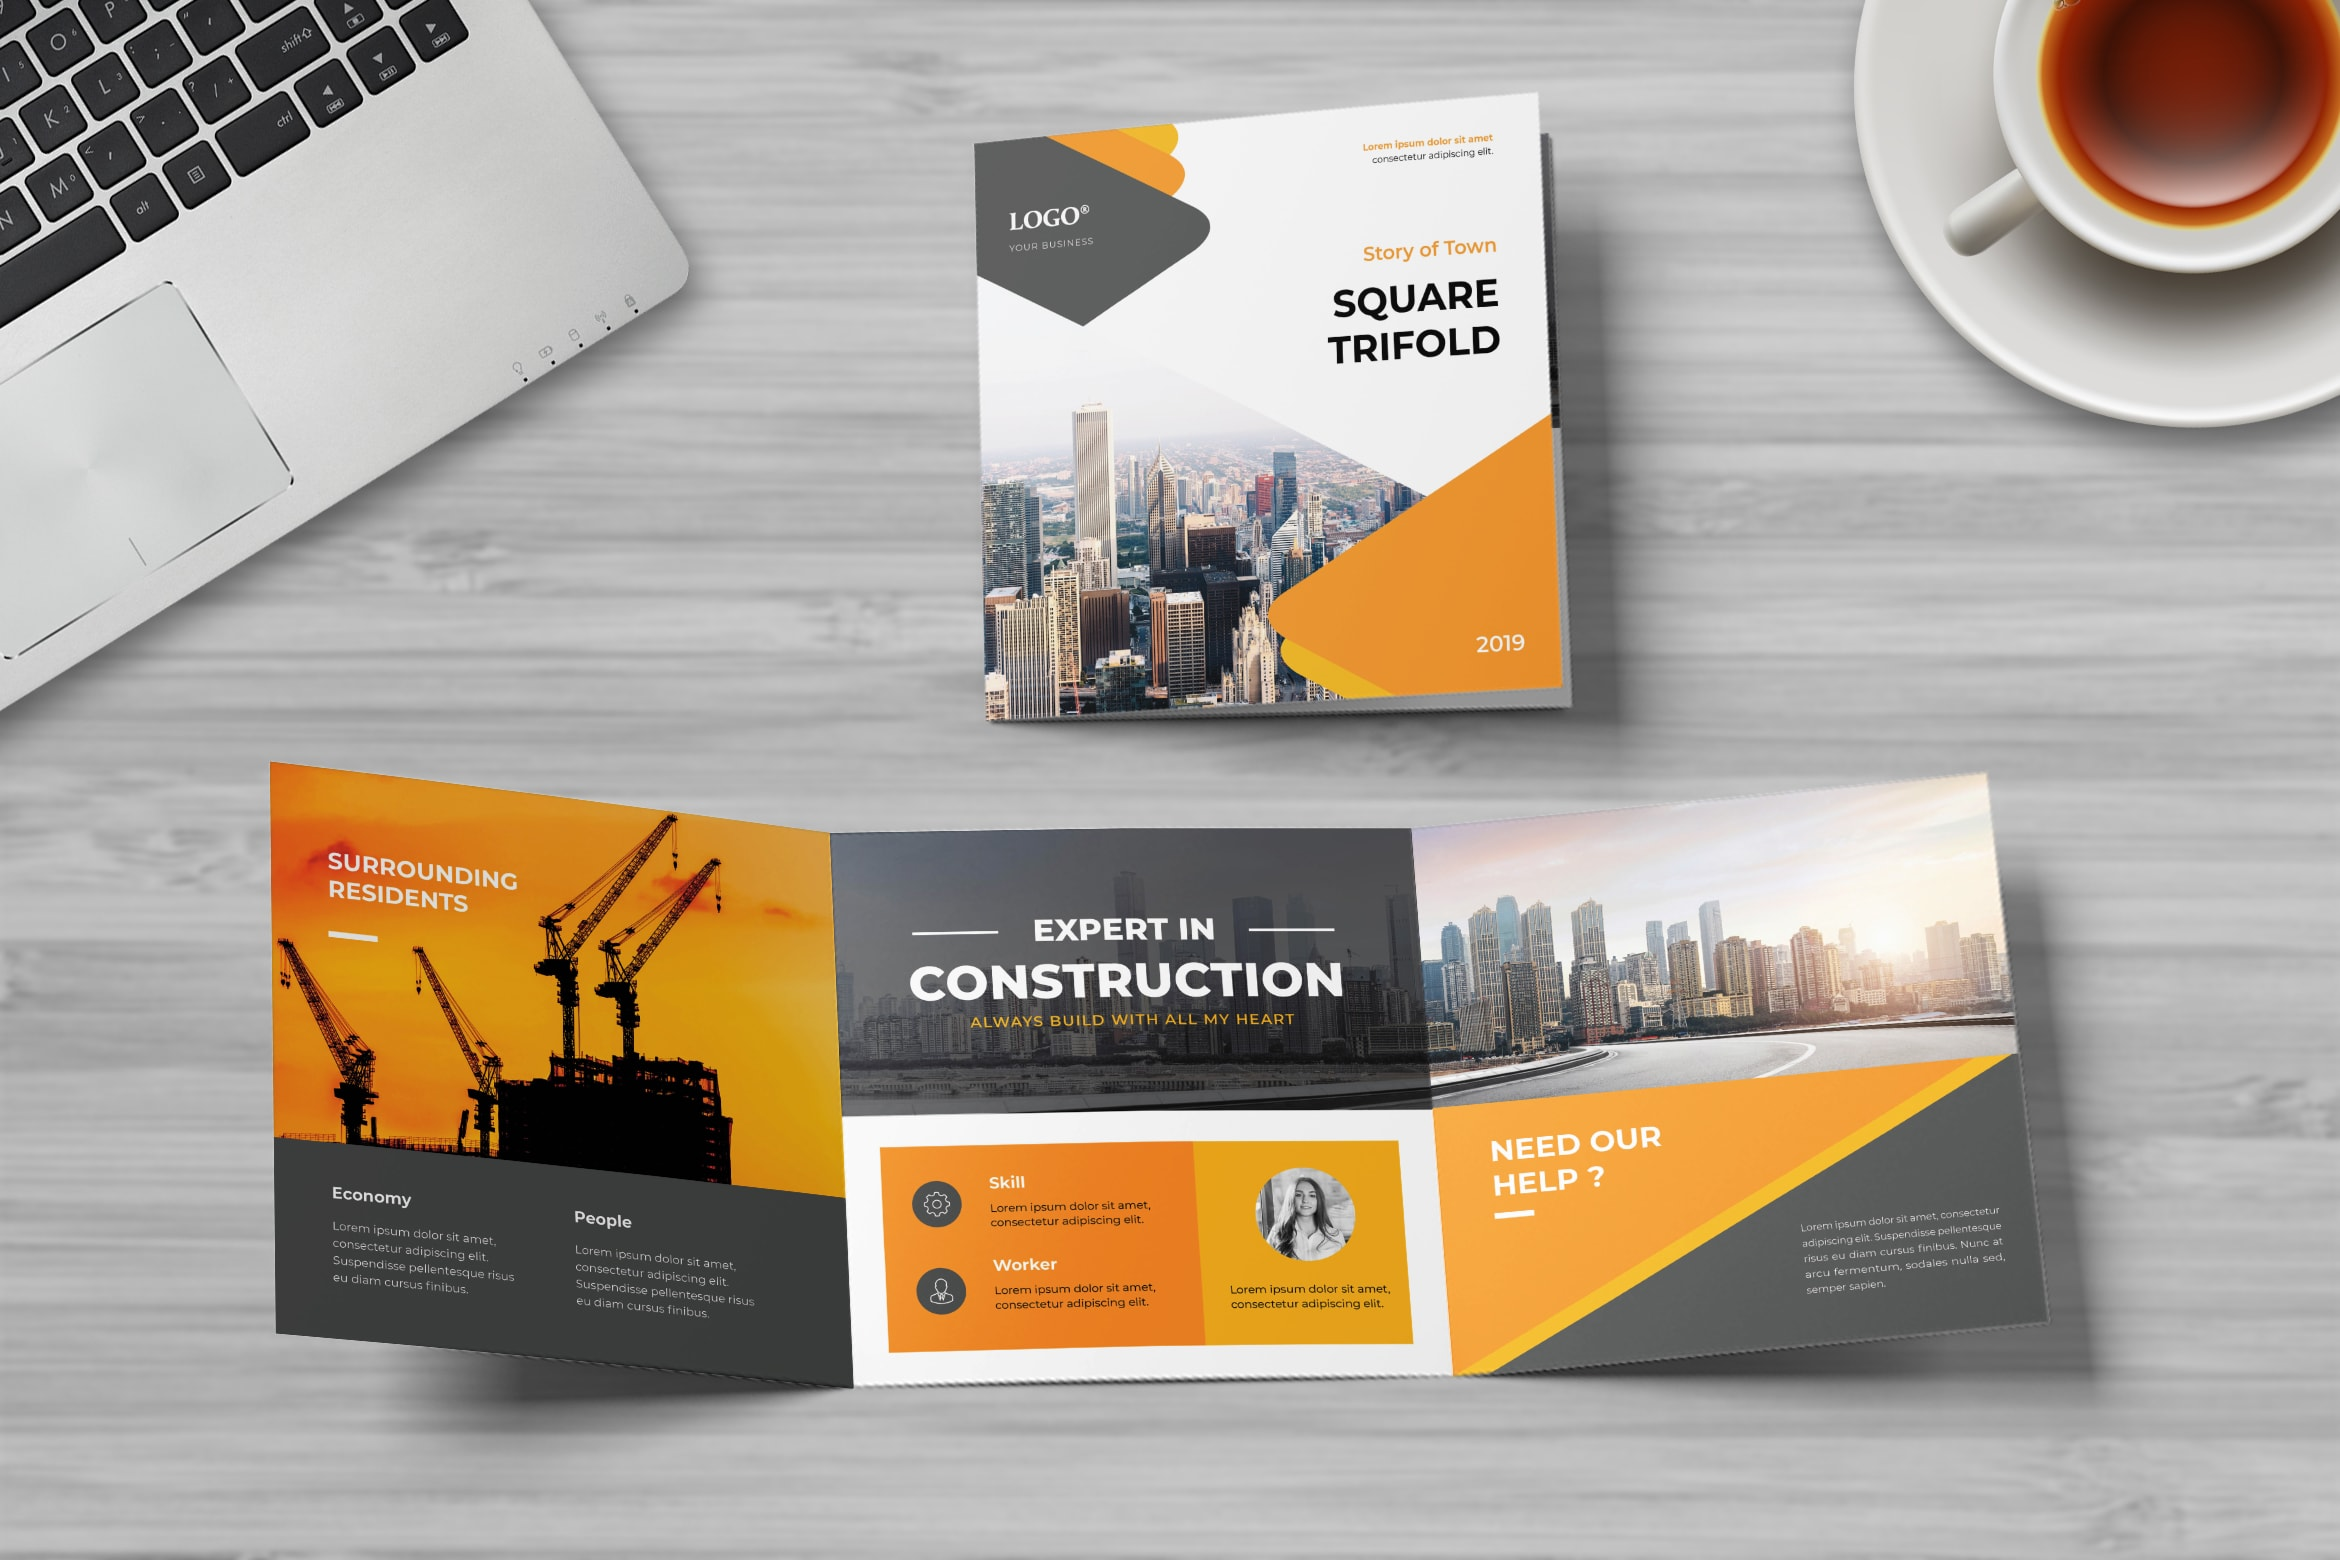 Square Trifold - Town Construction Service